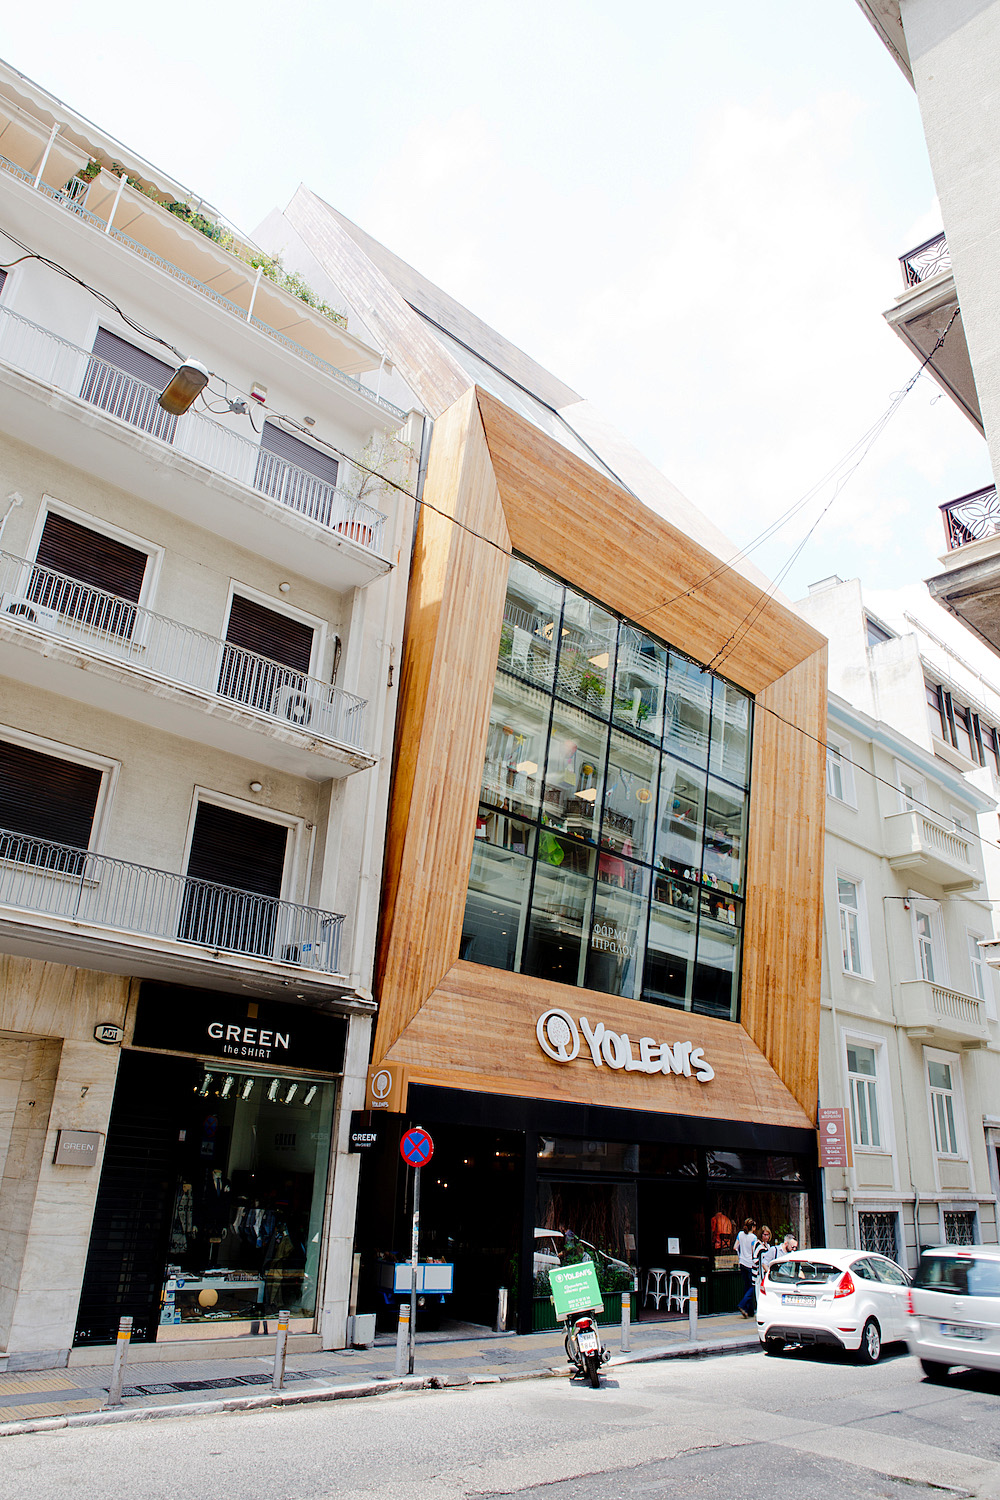 Athens Food Guide, where to eat in Athens, Restaurant-Tipps für Athen   www.thegoldenbun.com Yolemis